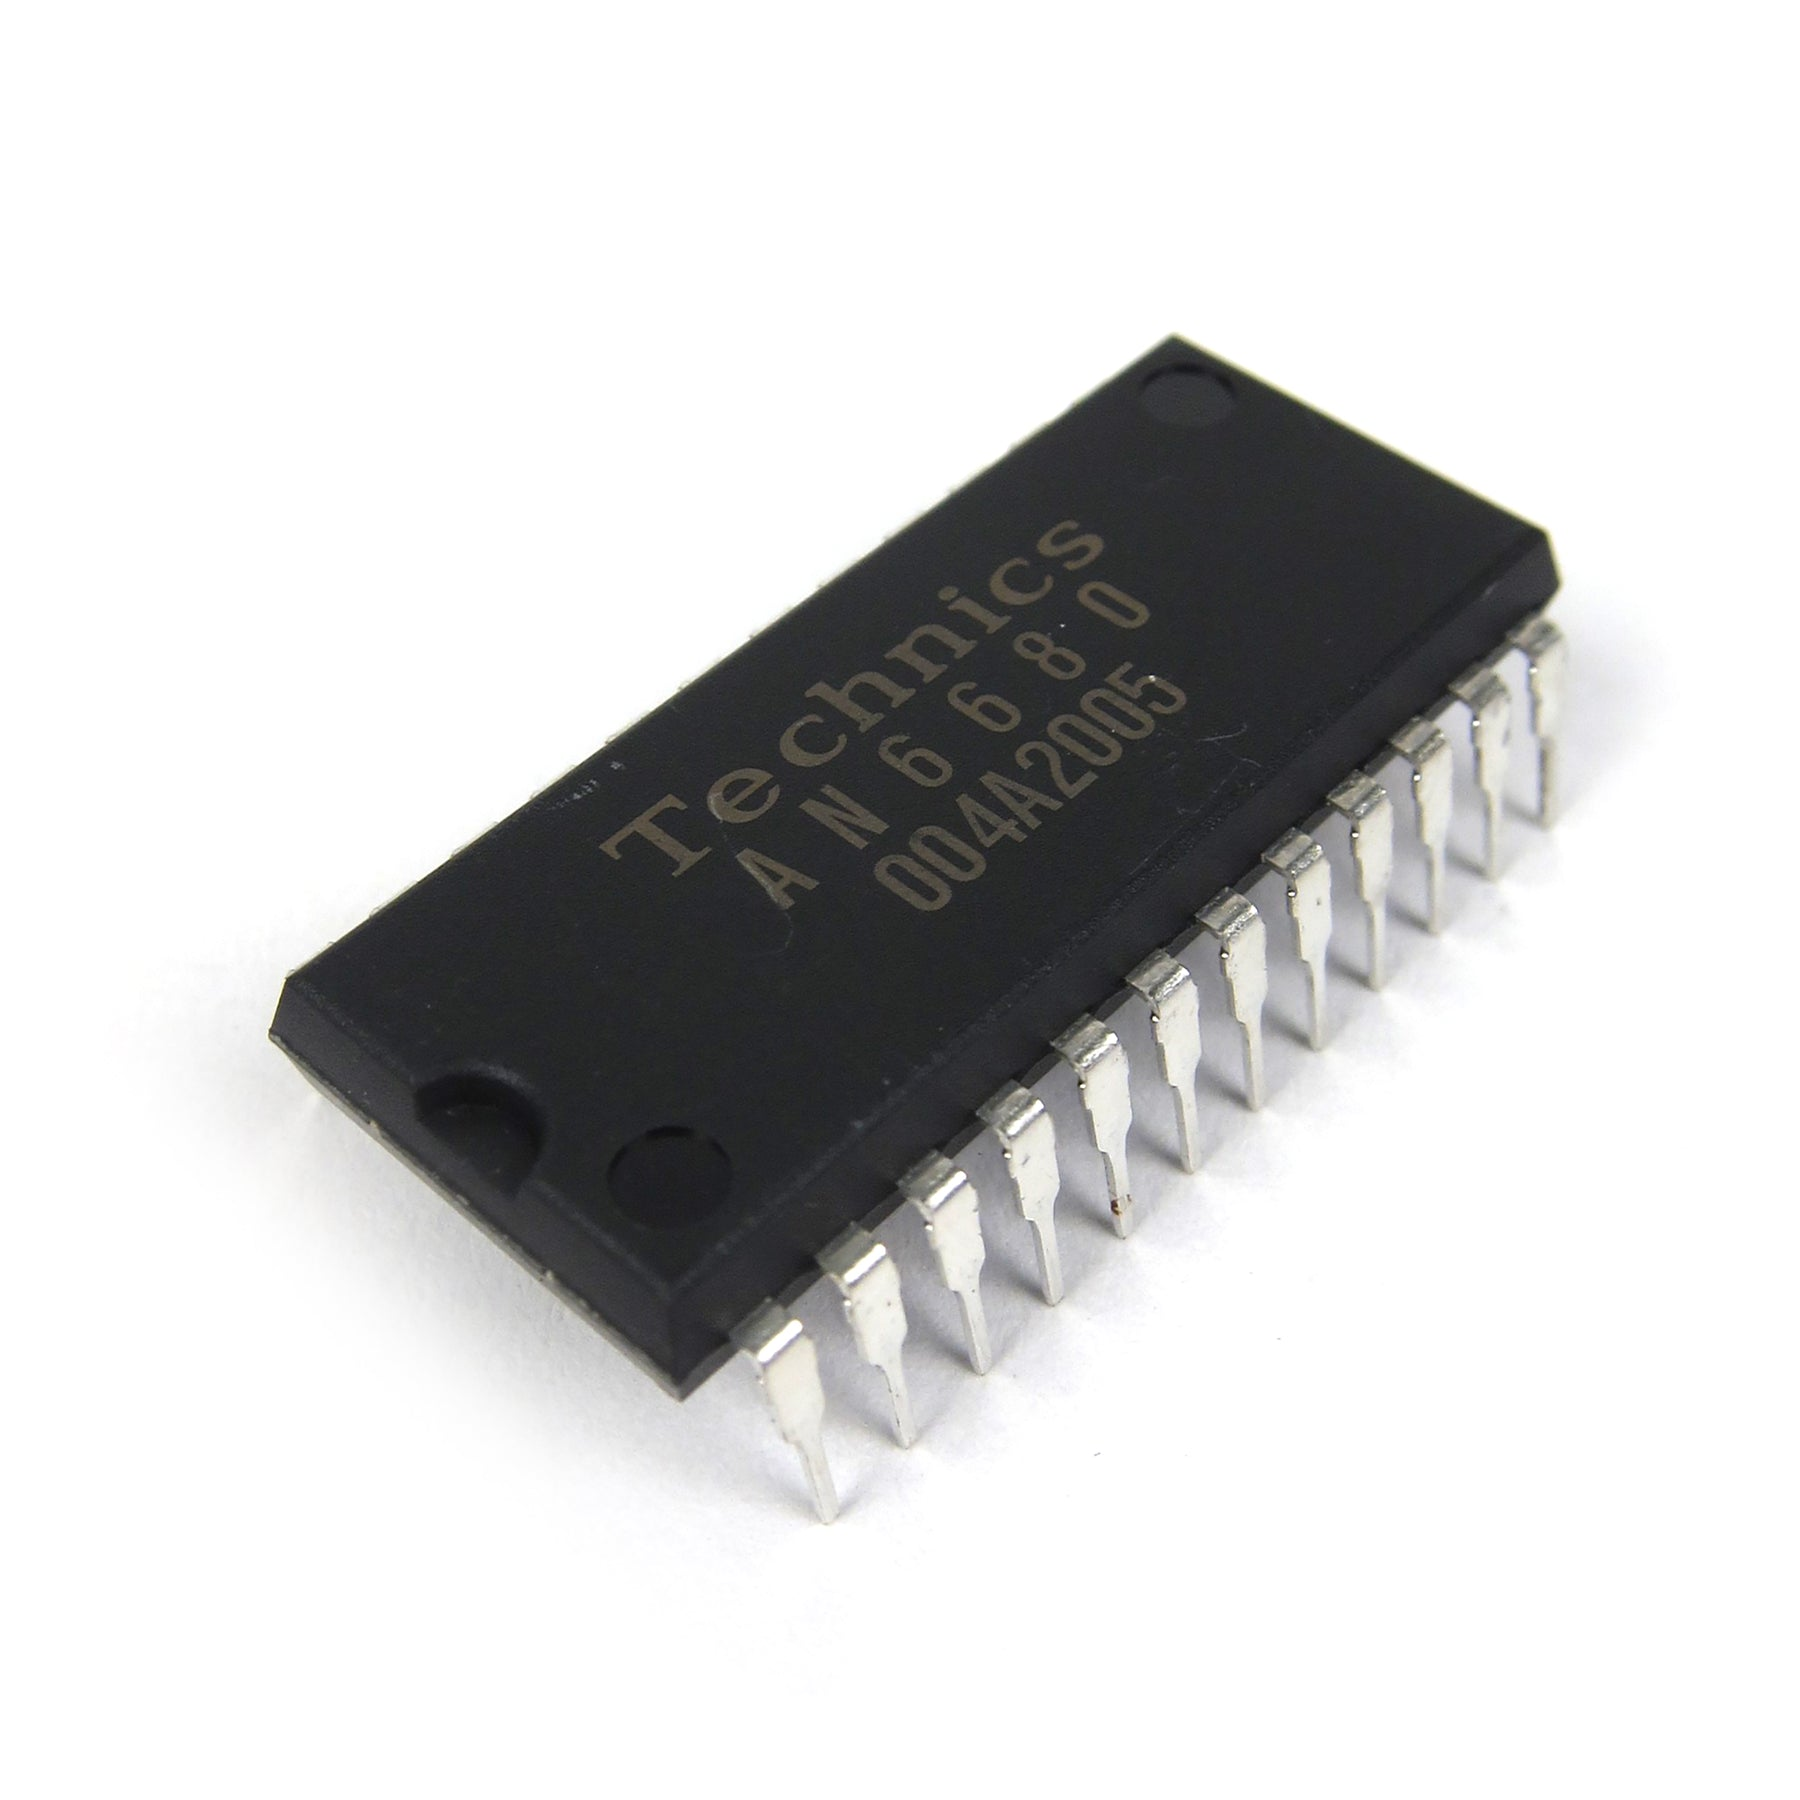 Technics Integrated Circuit Control Chip For 1200 An6680